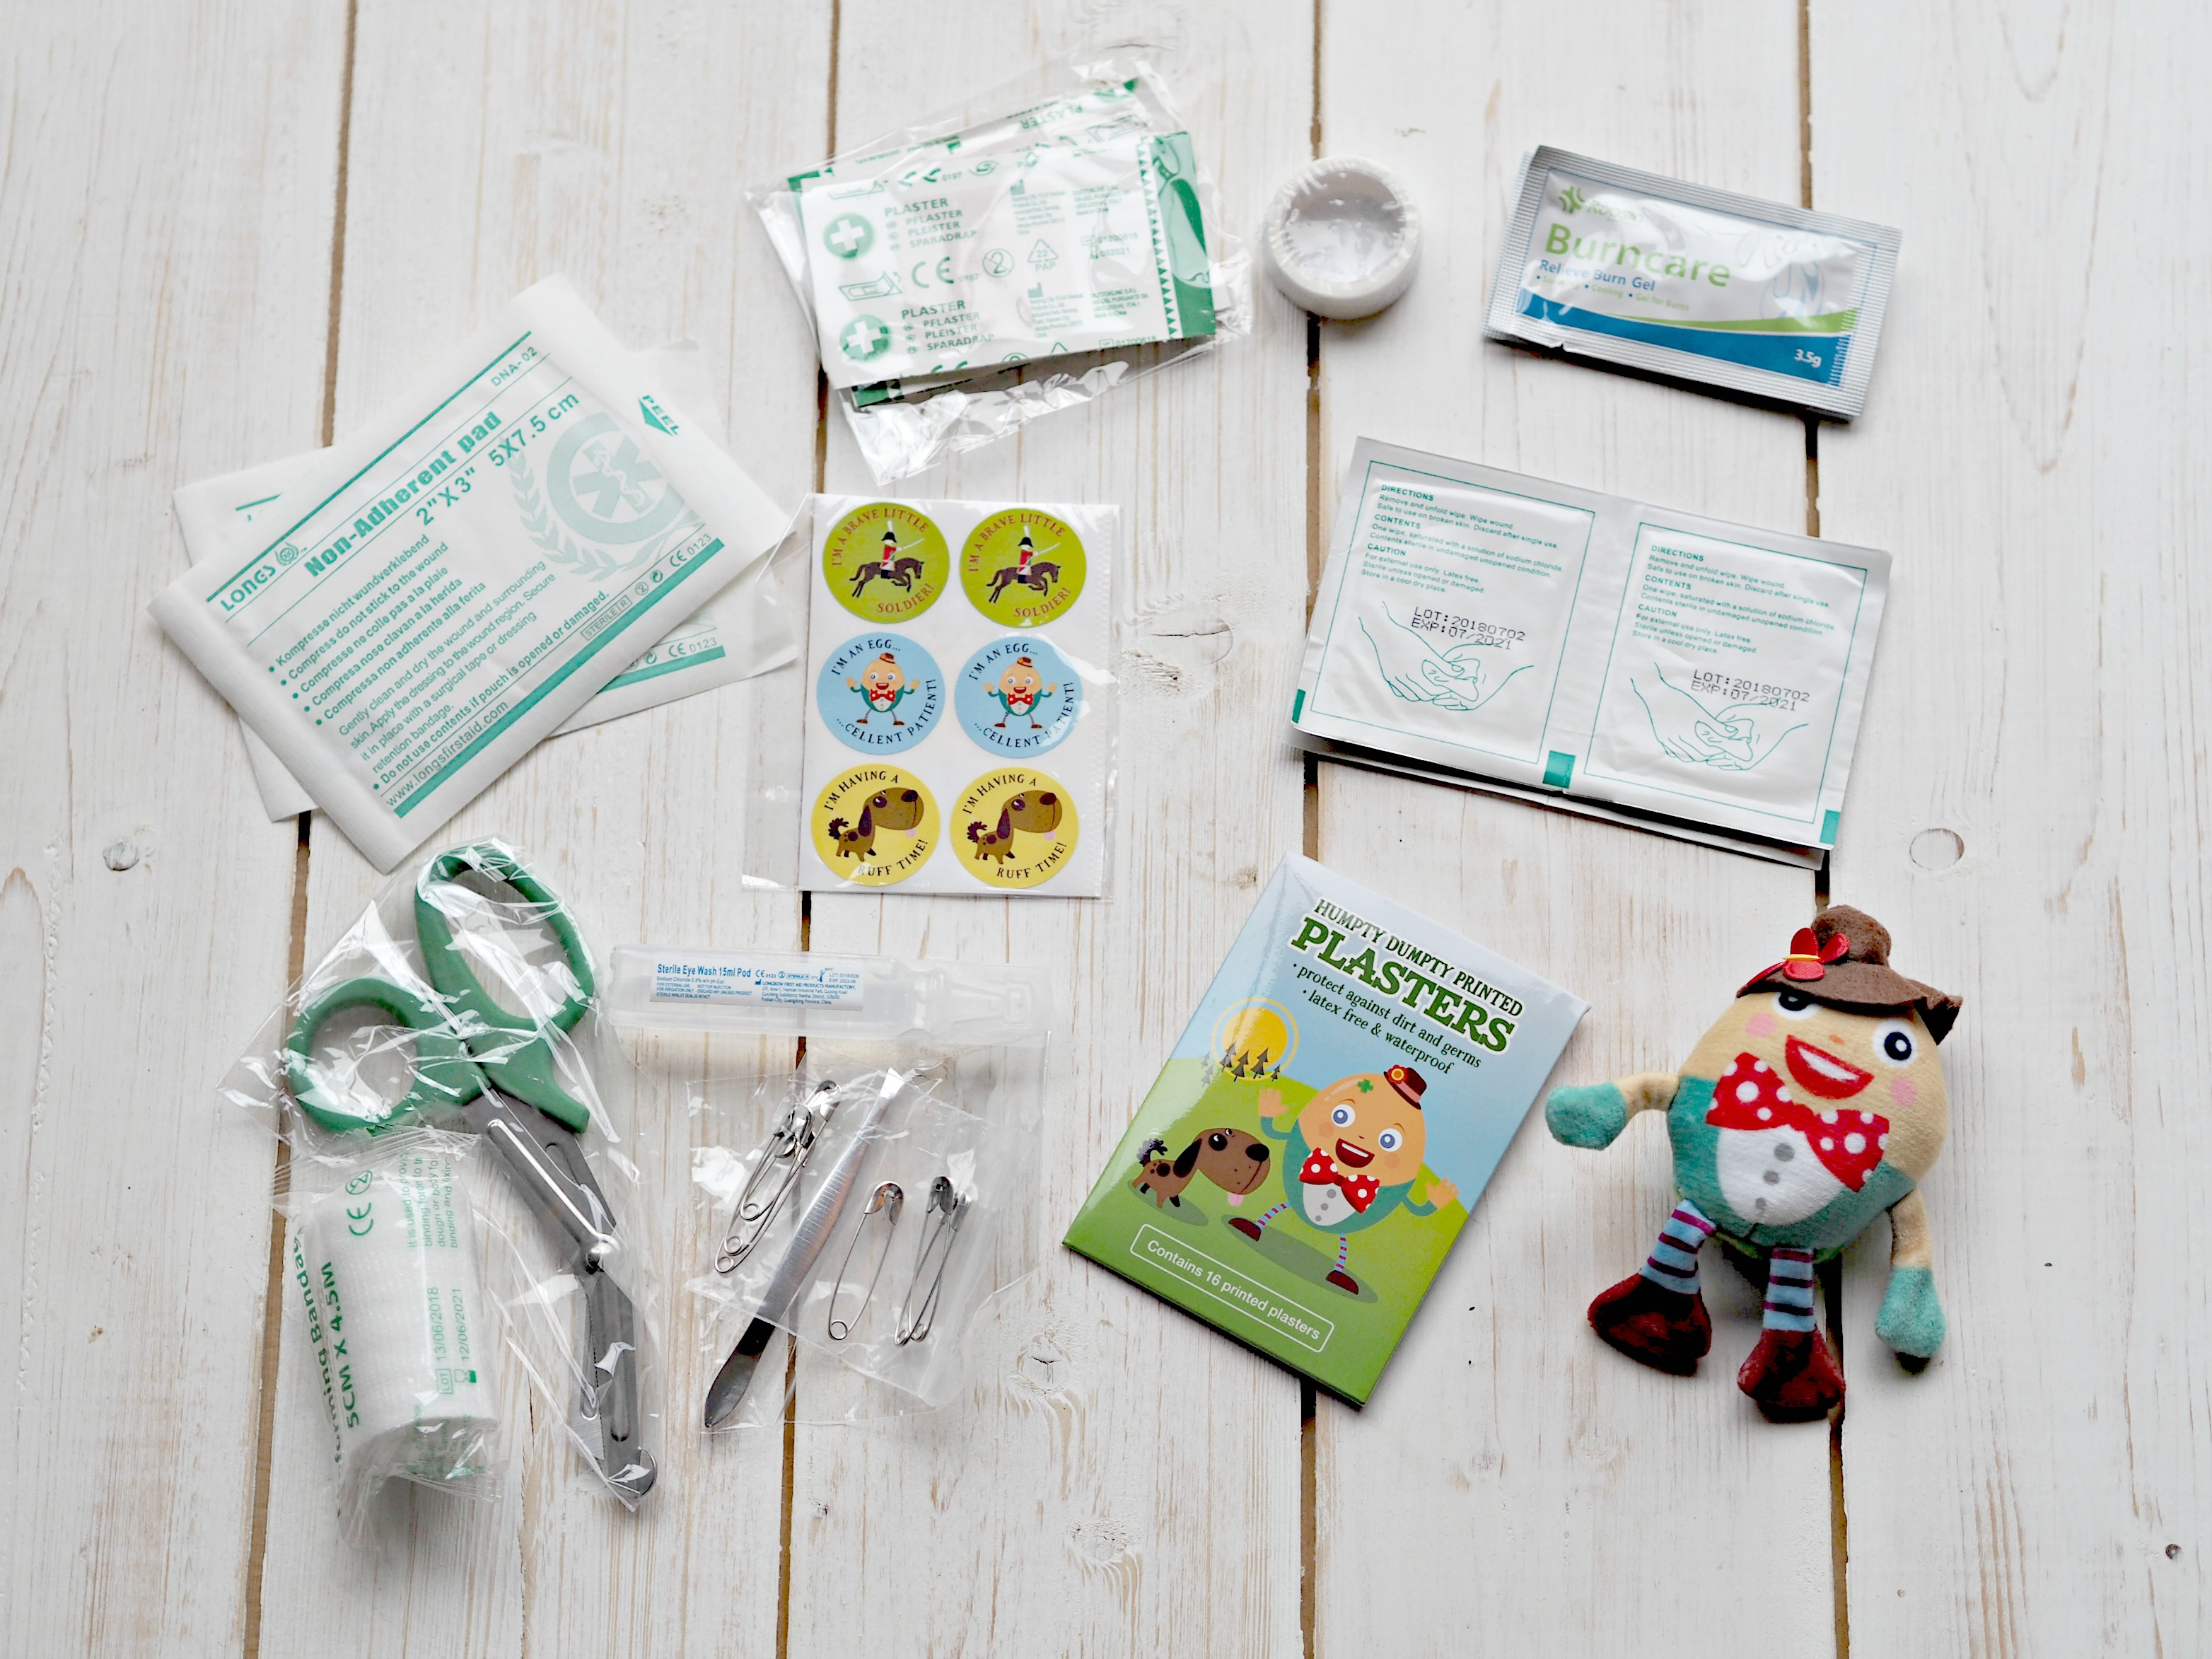 Yellodoor Baby First Aid Kit - Review and Giveaway - contents